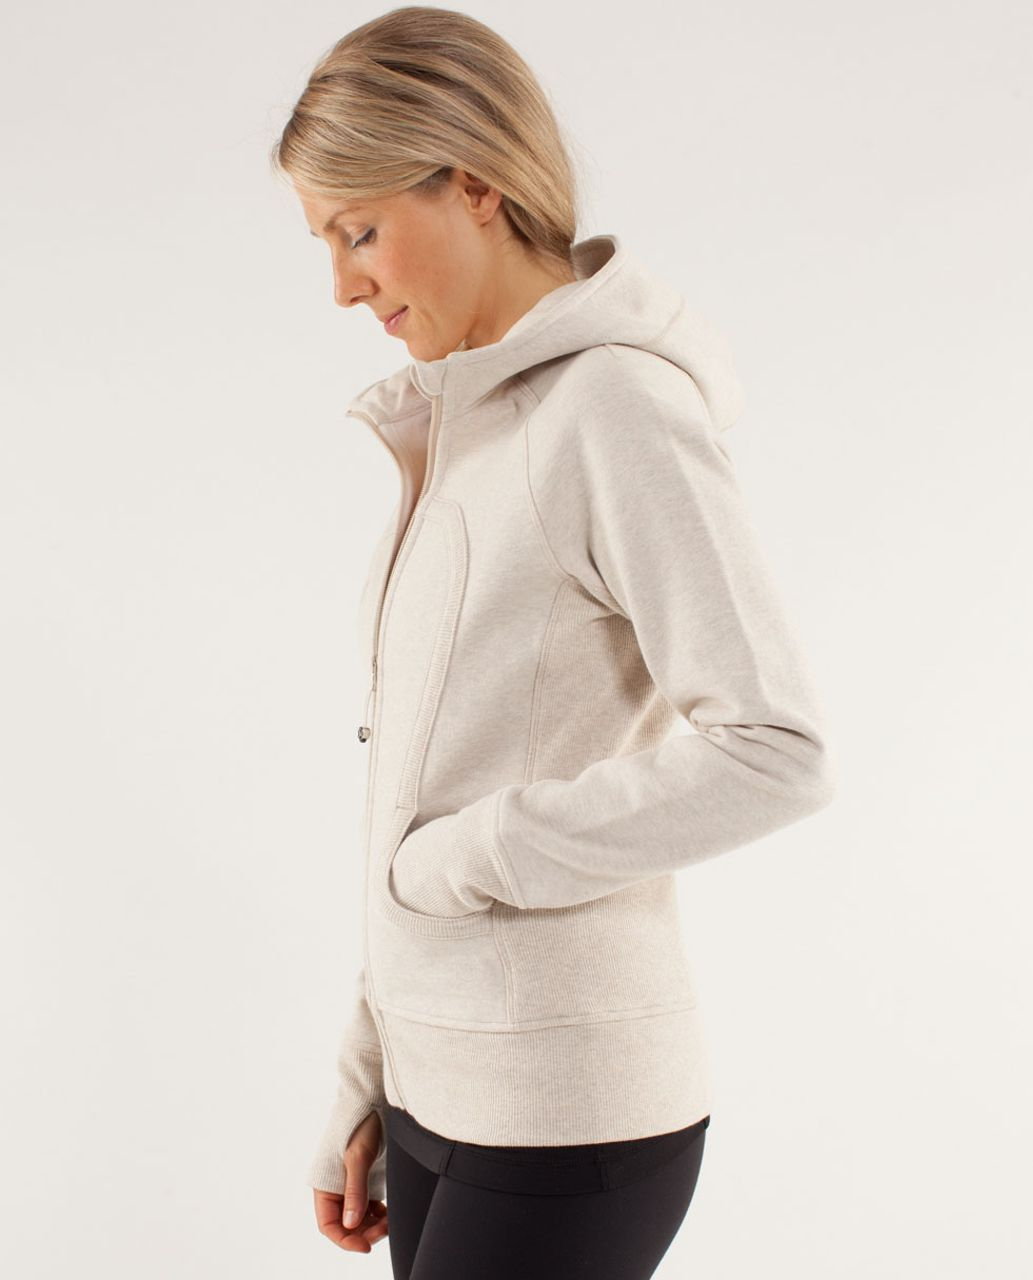 Lululemon Scuba Hoodie - Heathered Cashew / Polar Cream